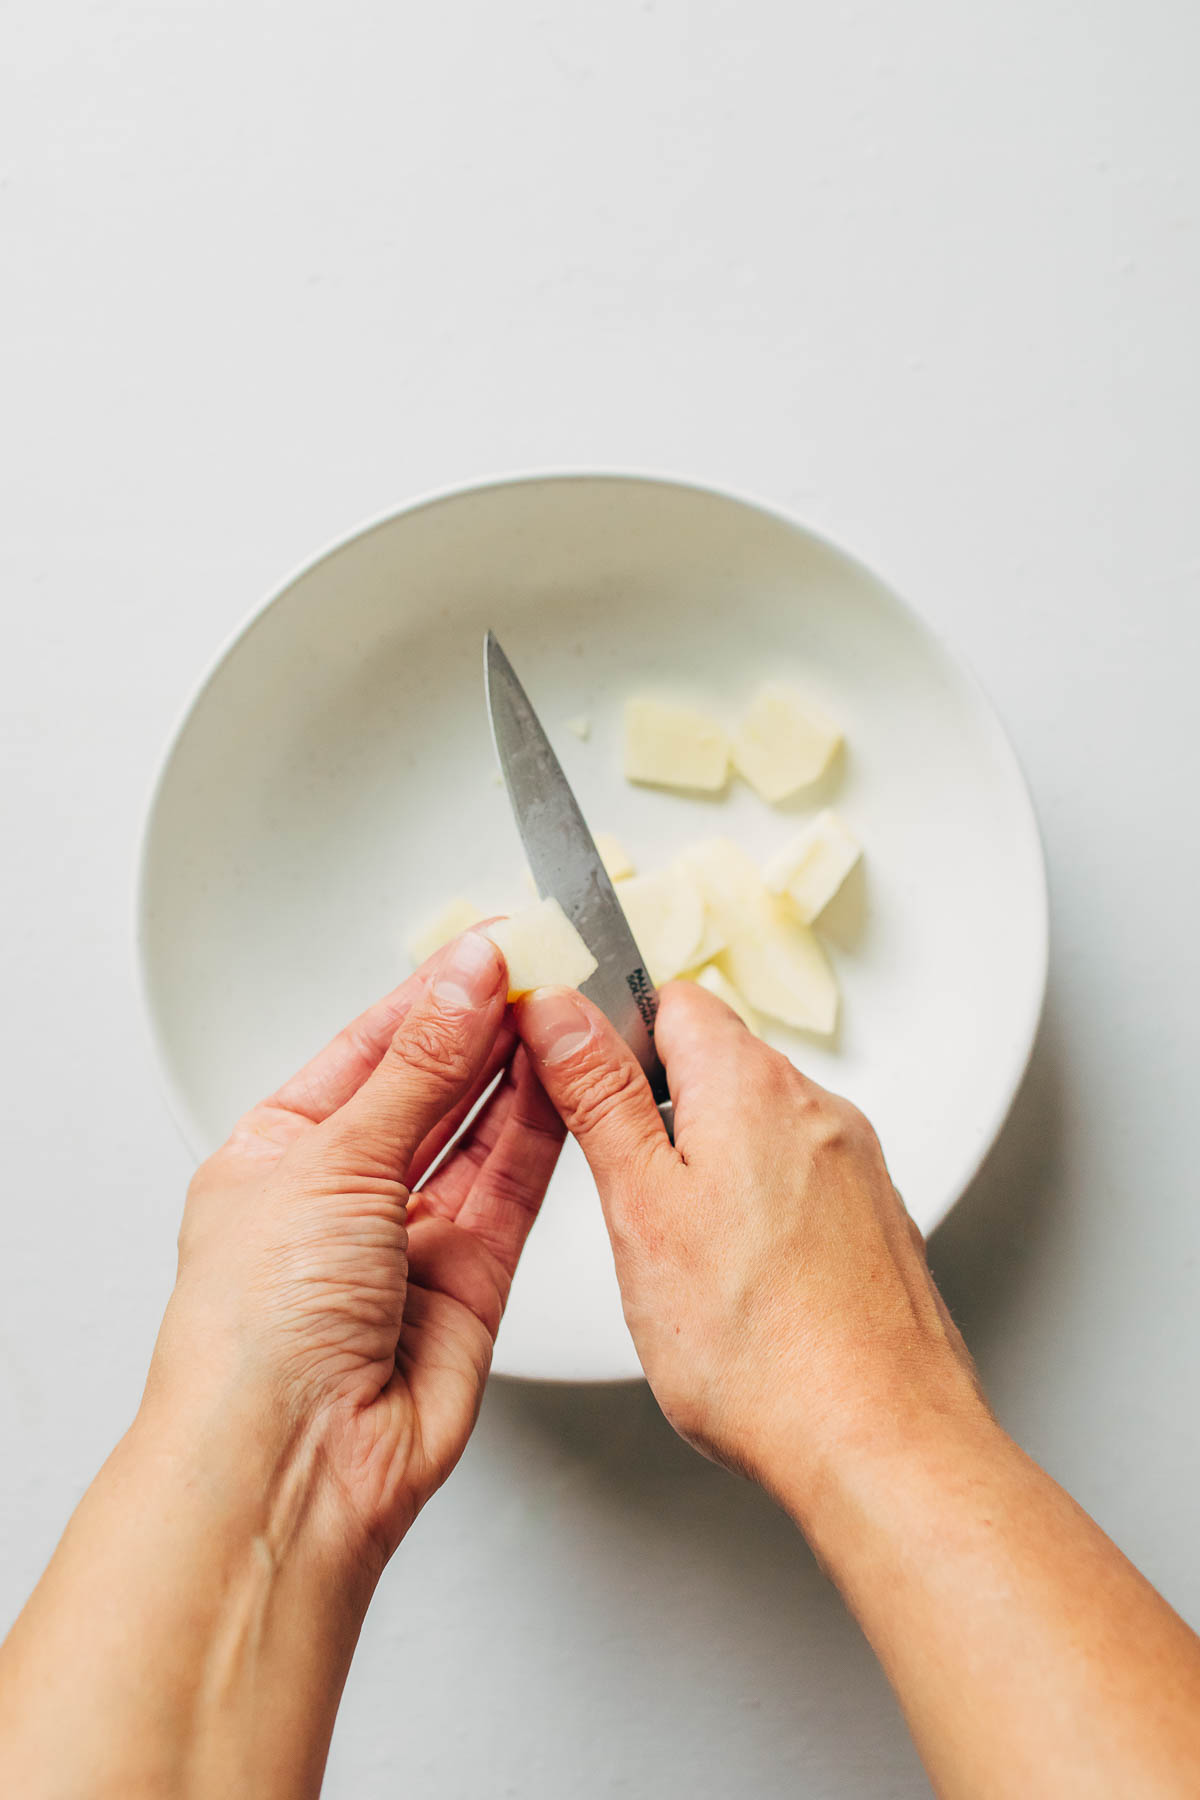 A hand slicing apples into a small bowl using a paring knife.